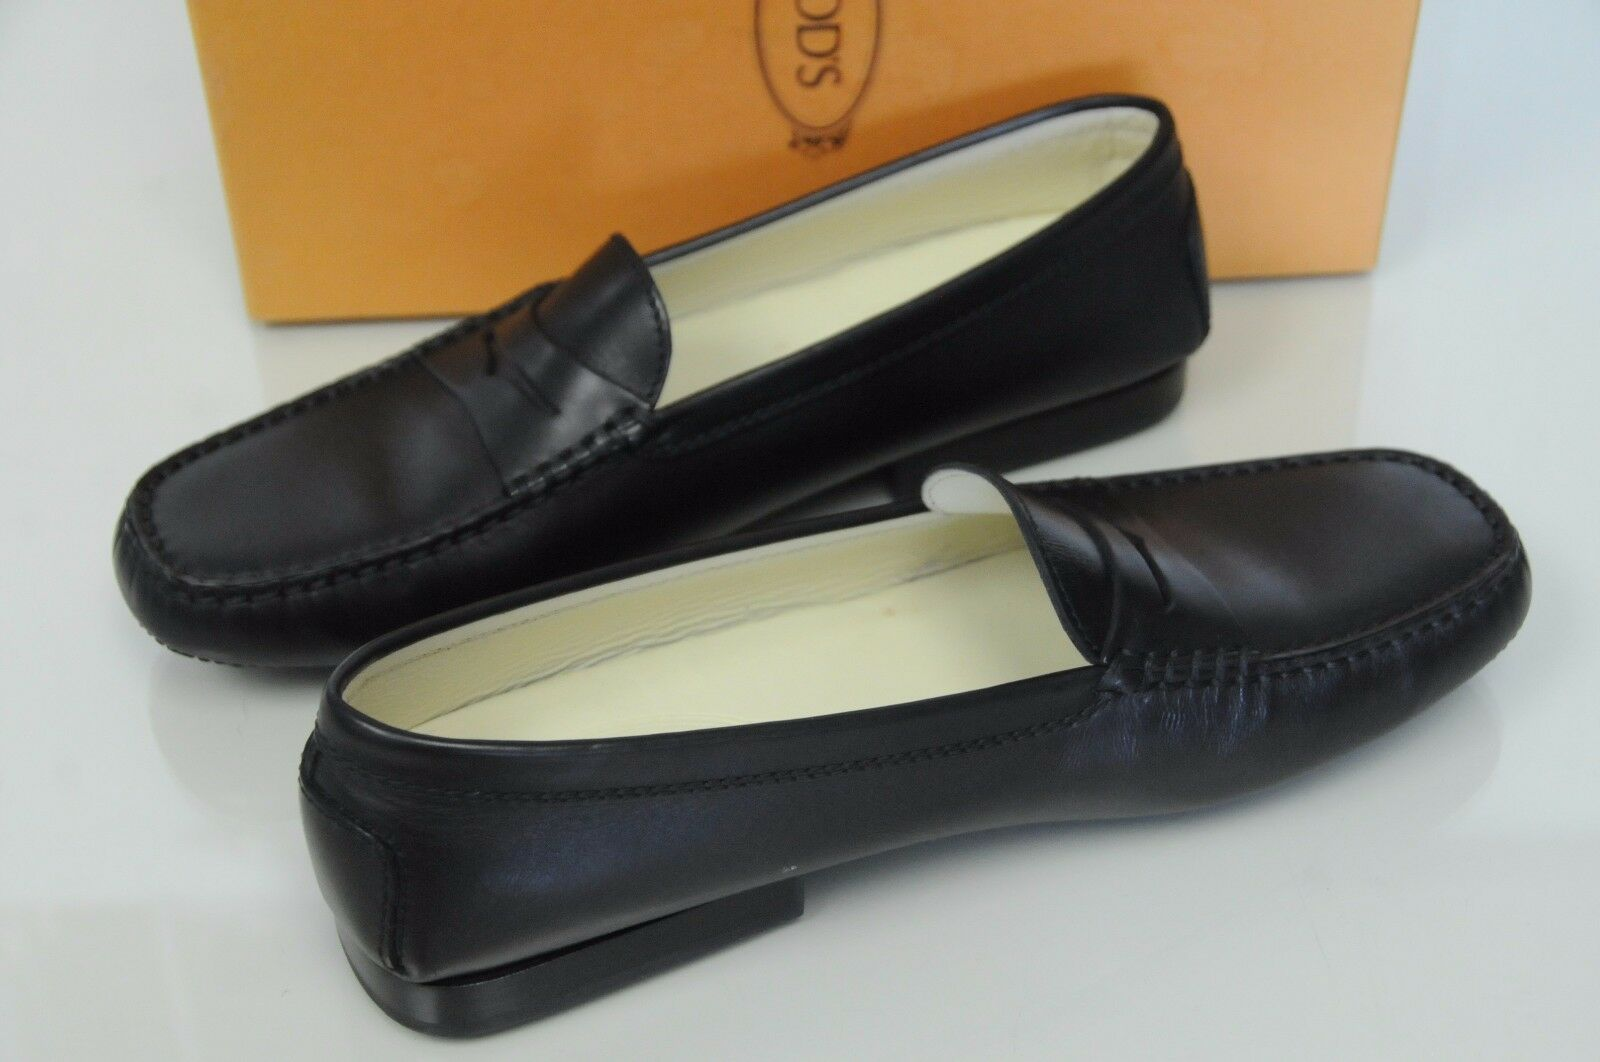 New TOD'S Flats Driving Moccasins shoes Flats  Black Leather Leather Leather 10 cd814c